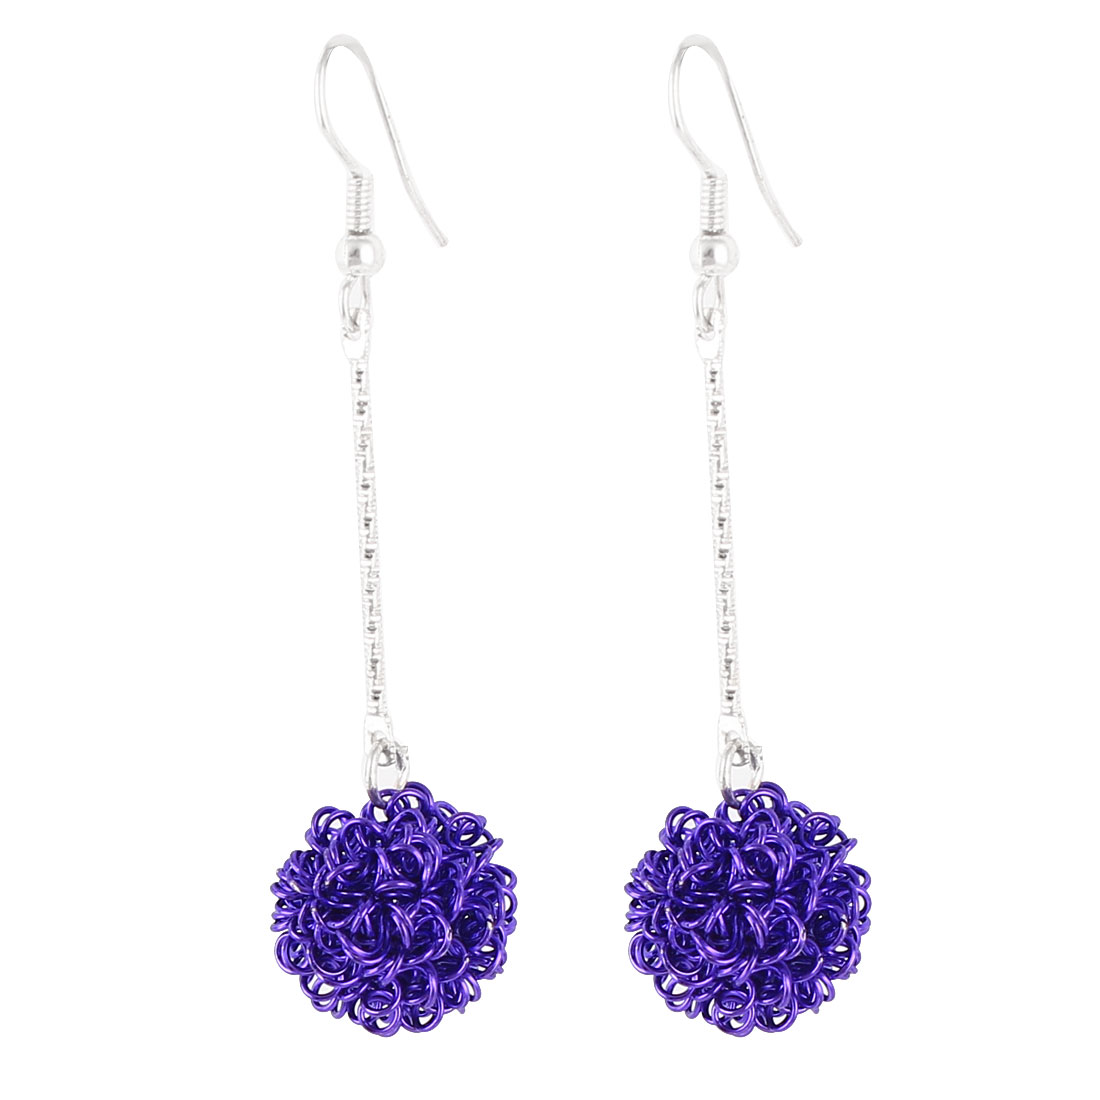 Ladies Purple Hollow Round Ball Dangling Pendant Fish Hook Earrings Pair